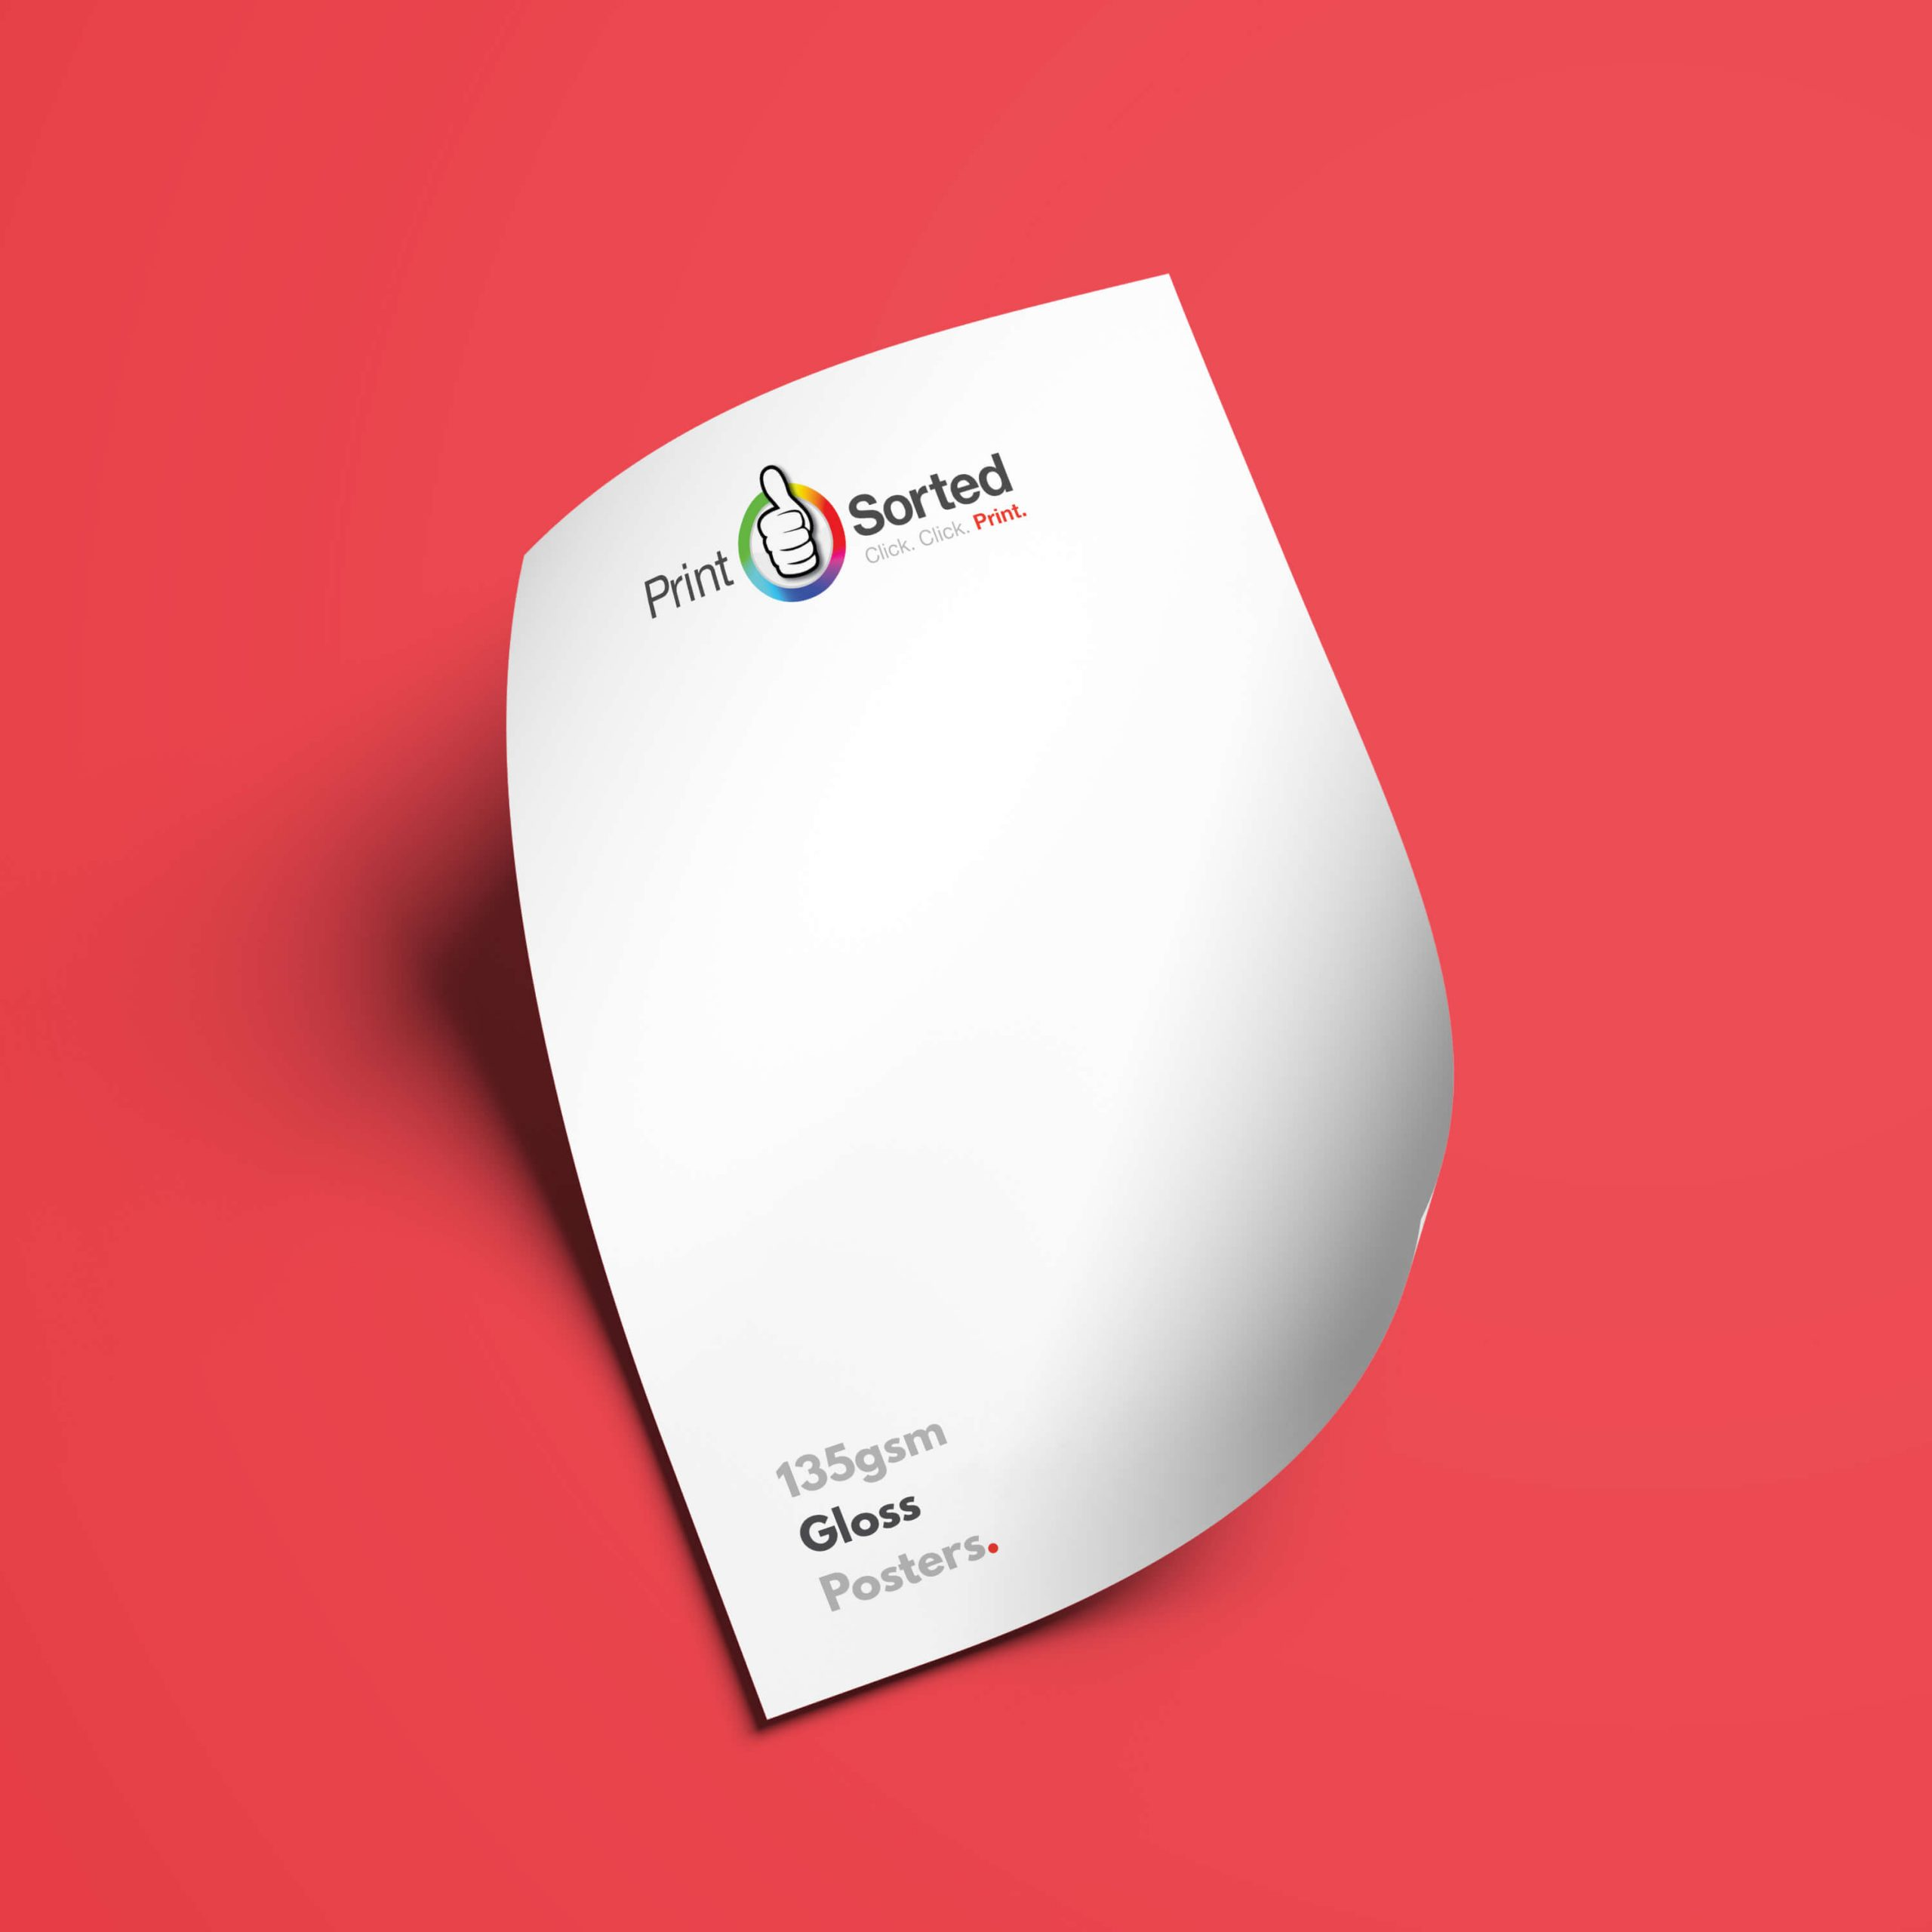 135gsm Gloss Posters by printsorted